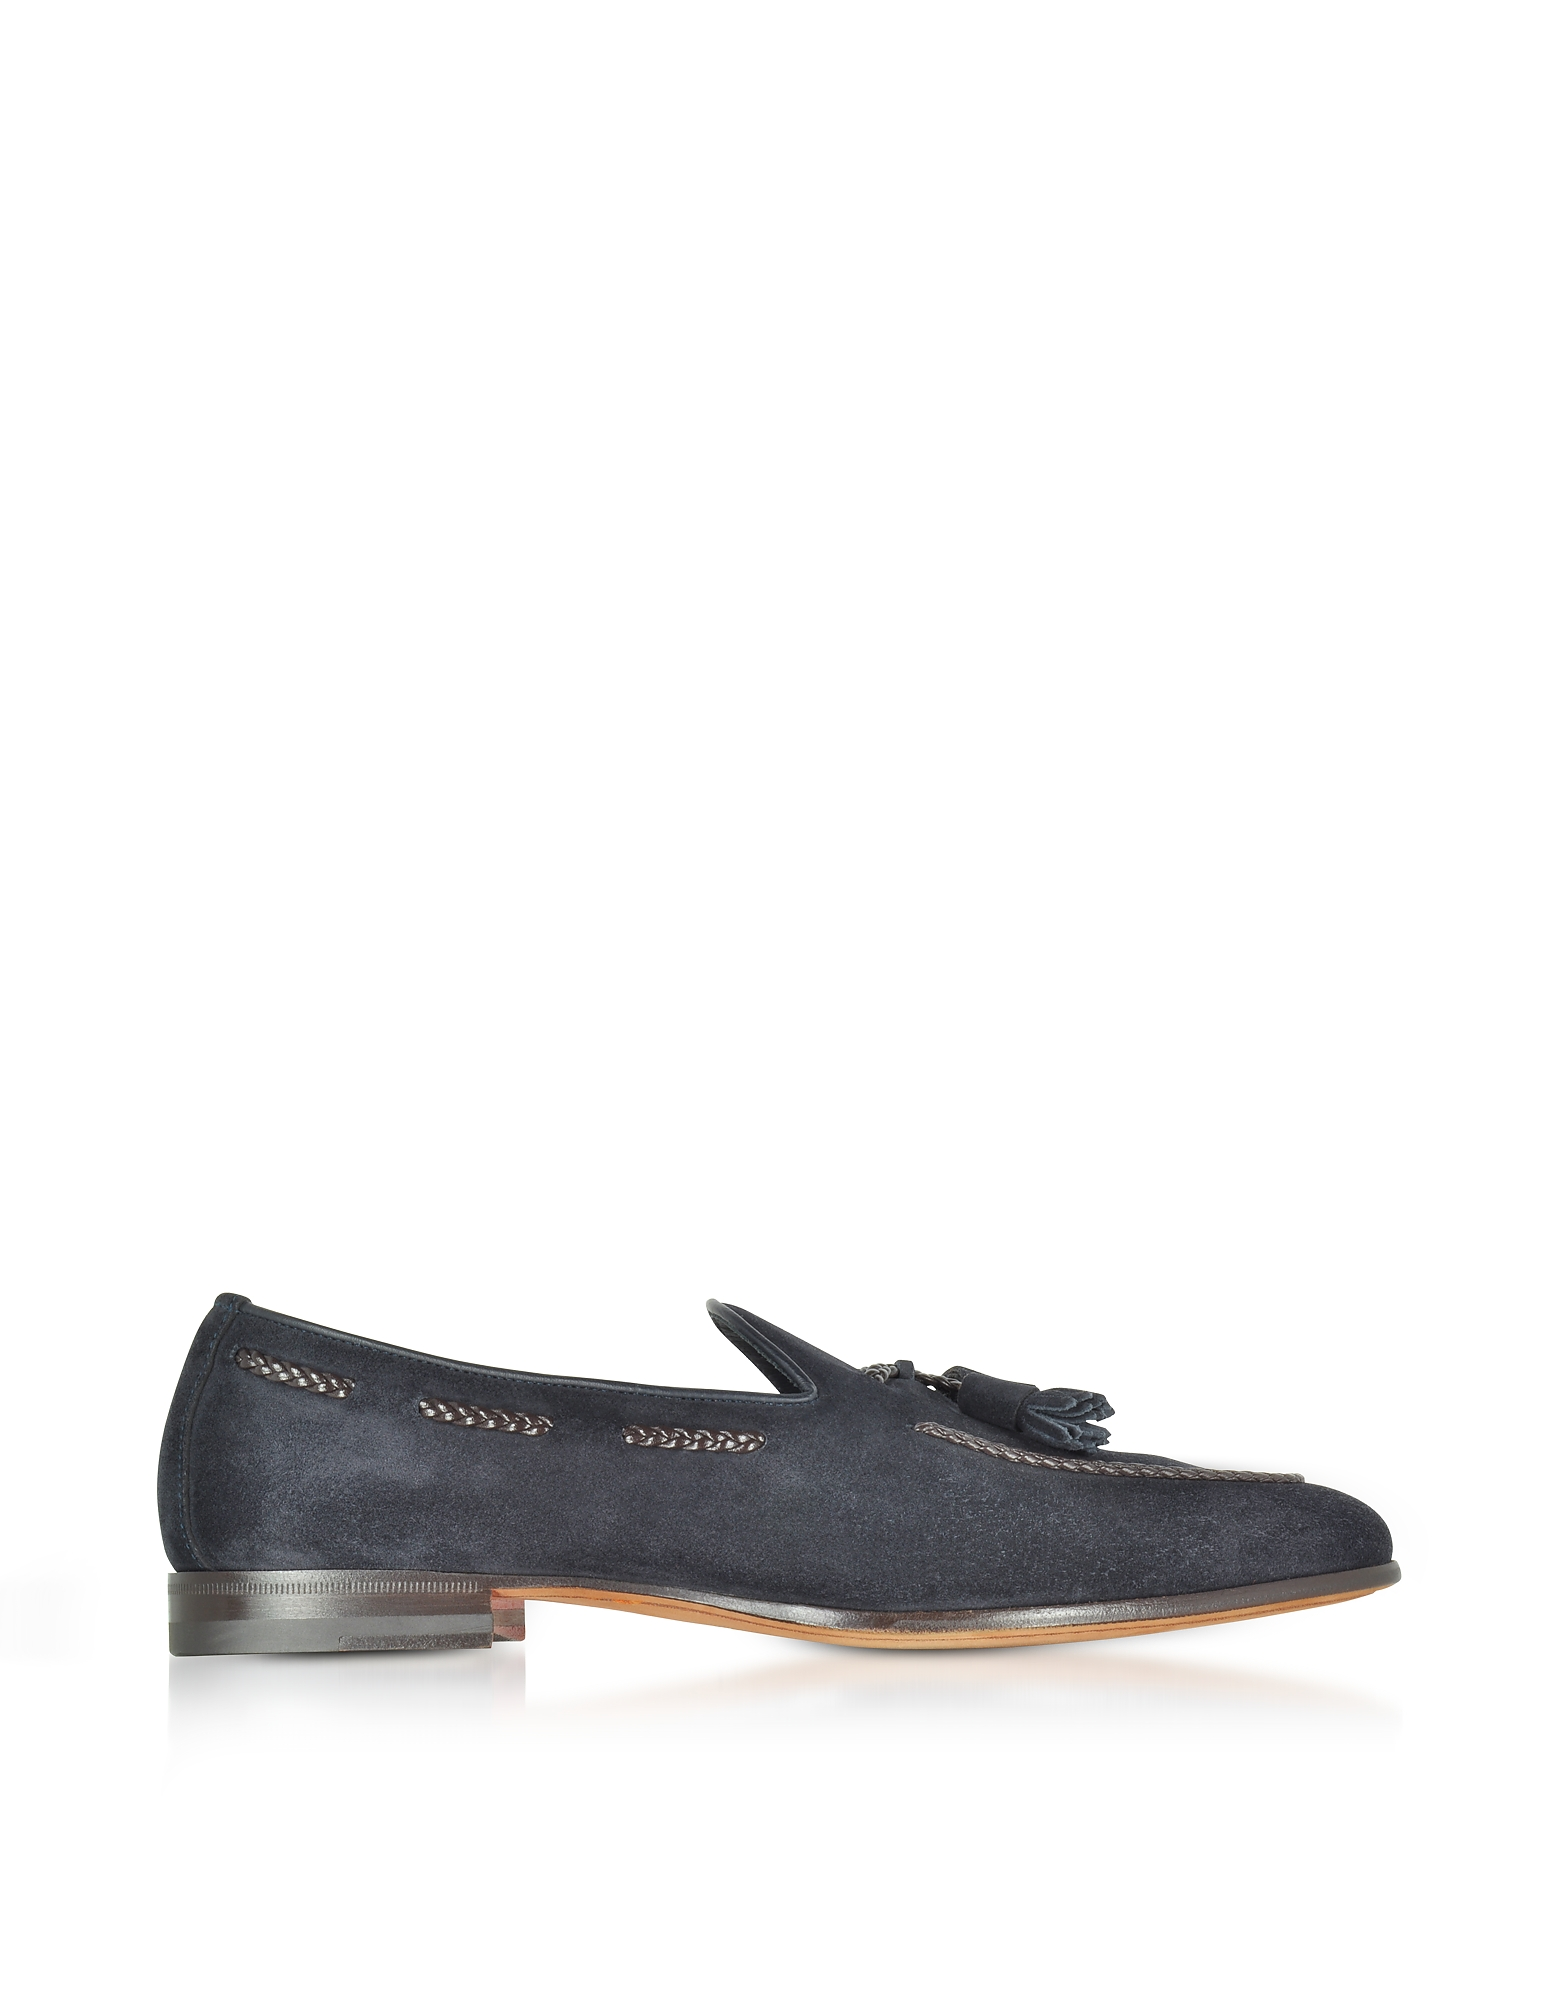 Santoni Shoes, Dark Blue Suede Loafer w/Tassels